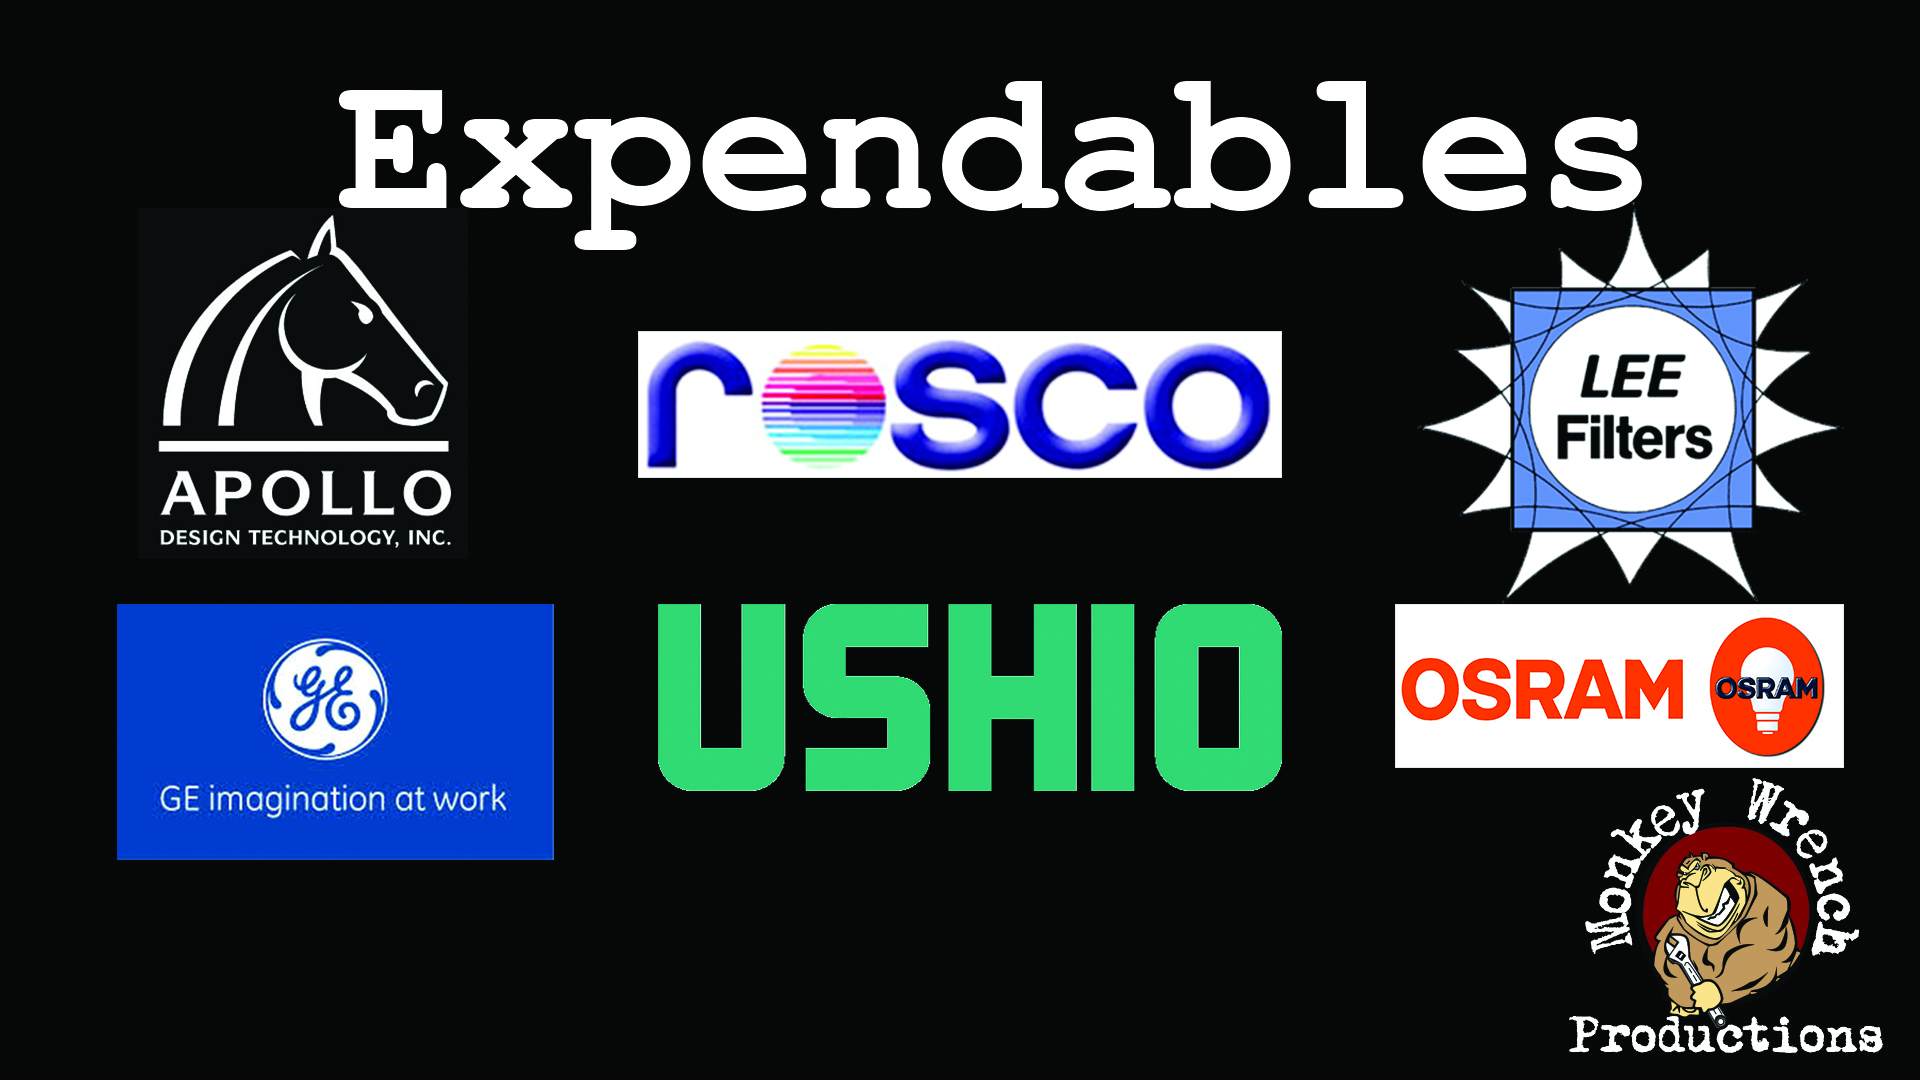 Expendable logos